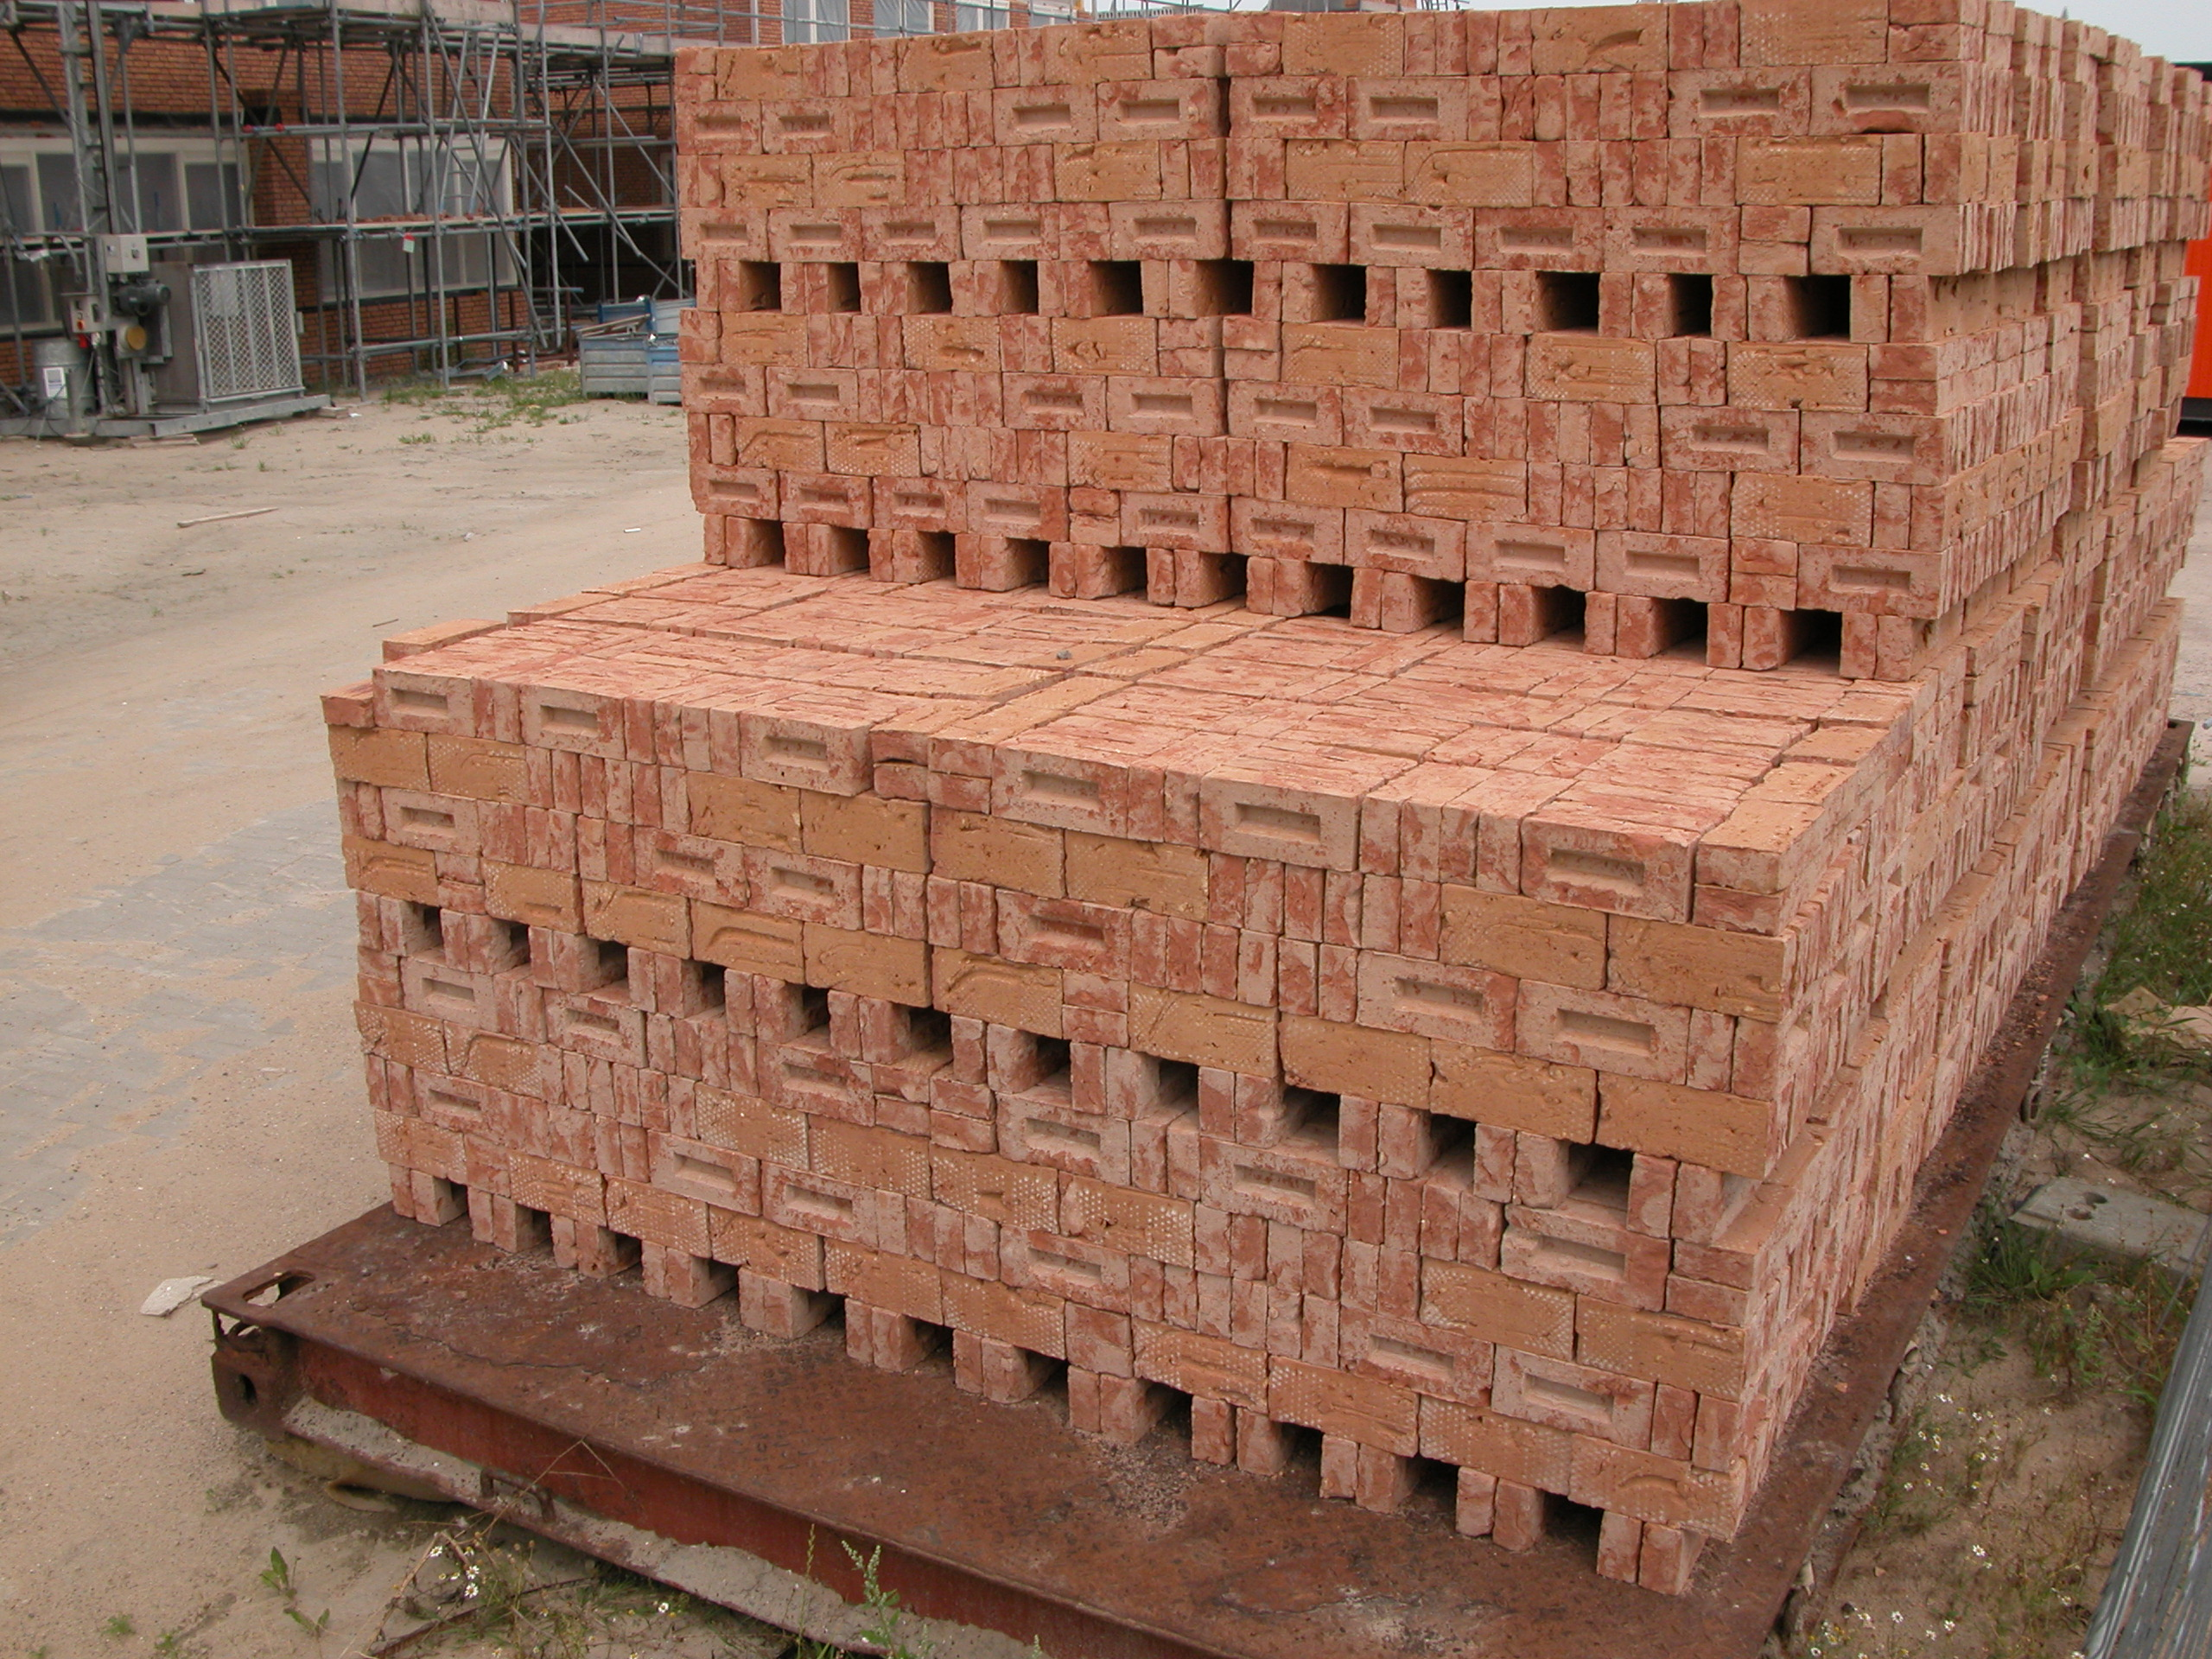 bricks brick construction site pile